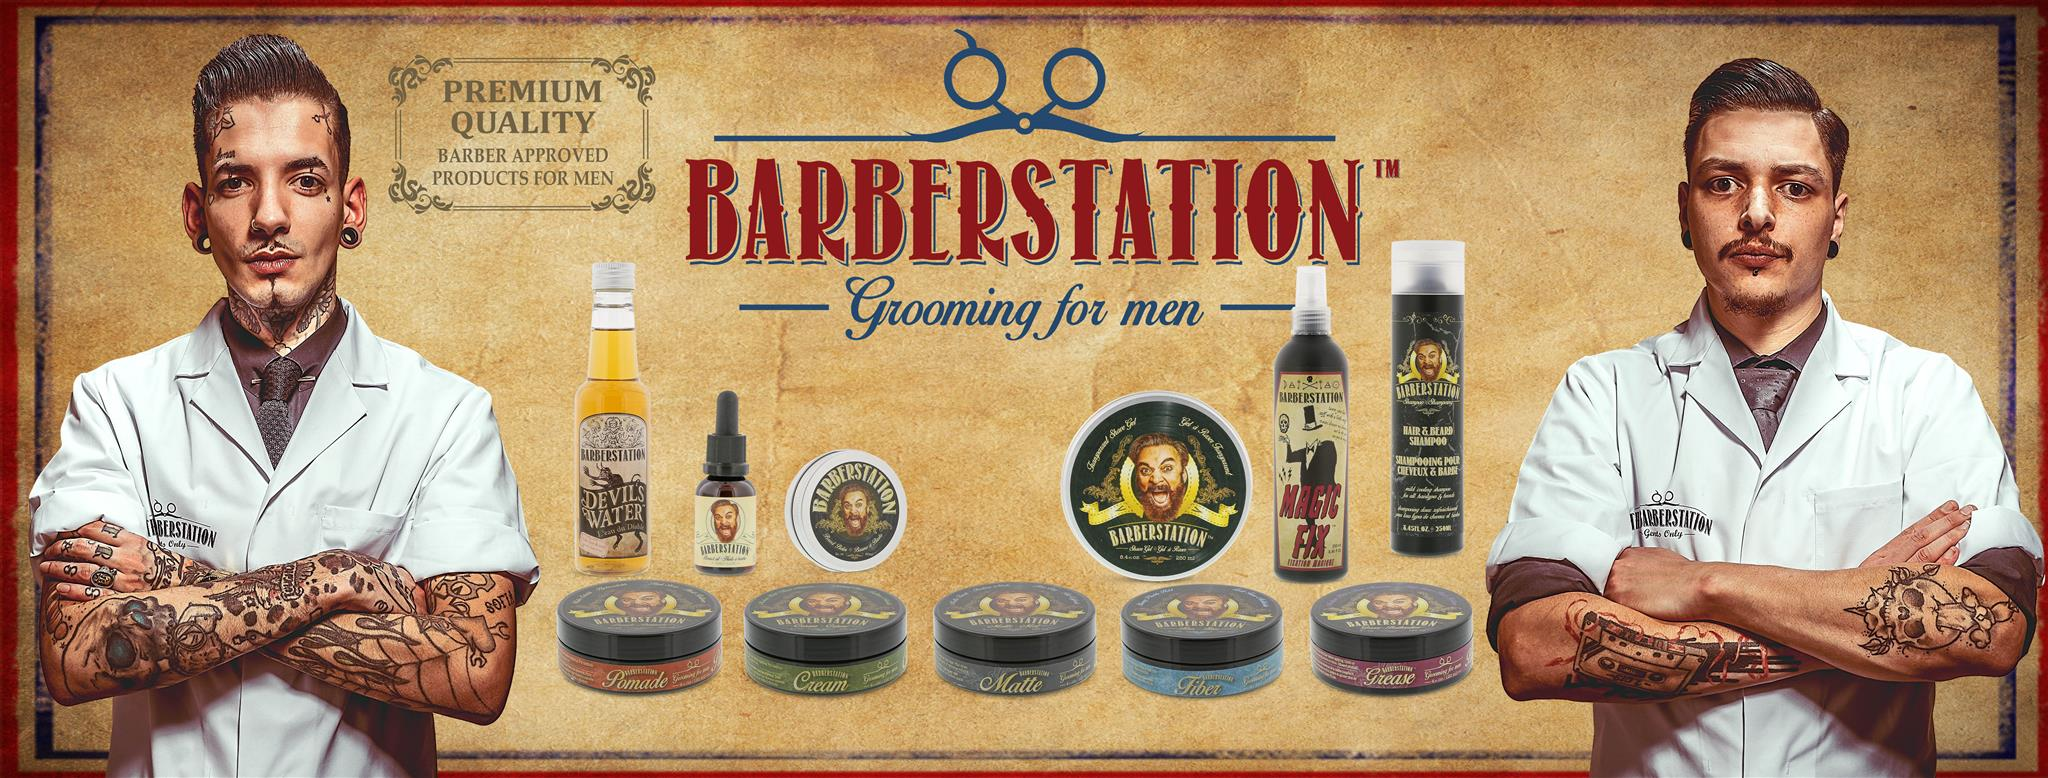 Barberstation